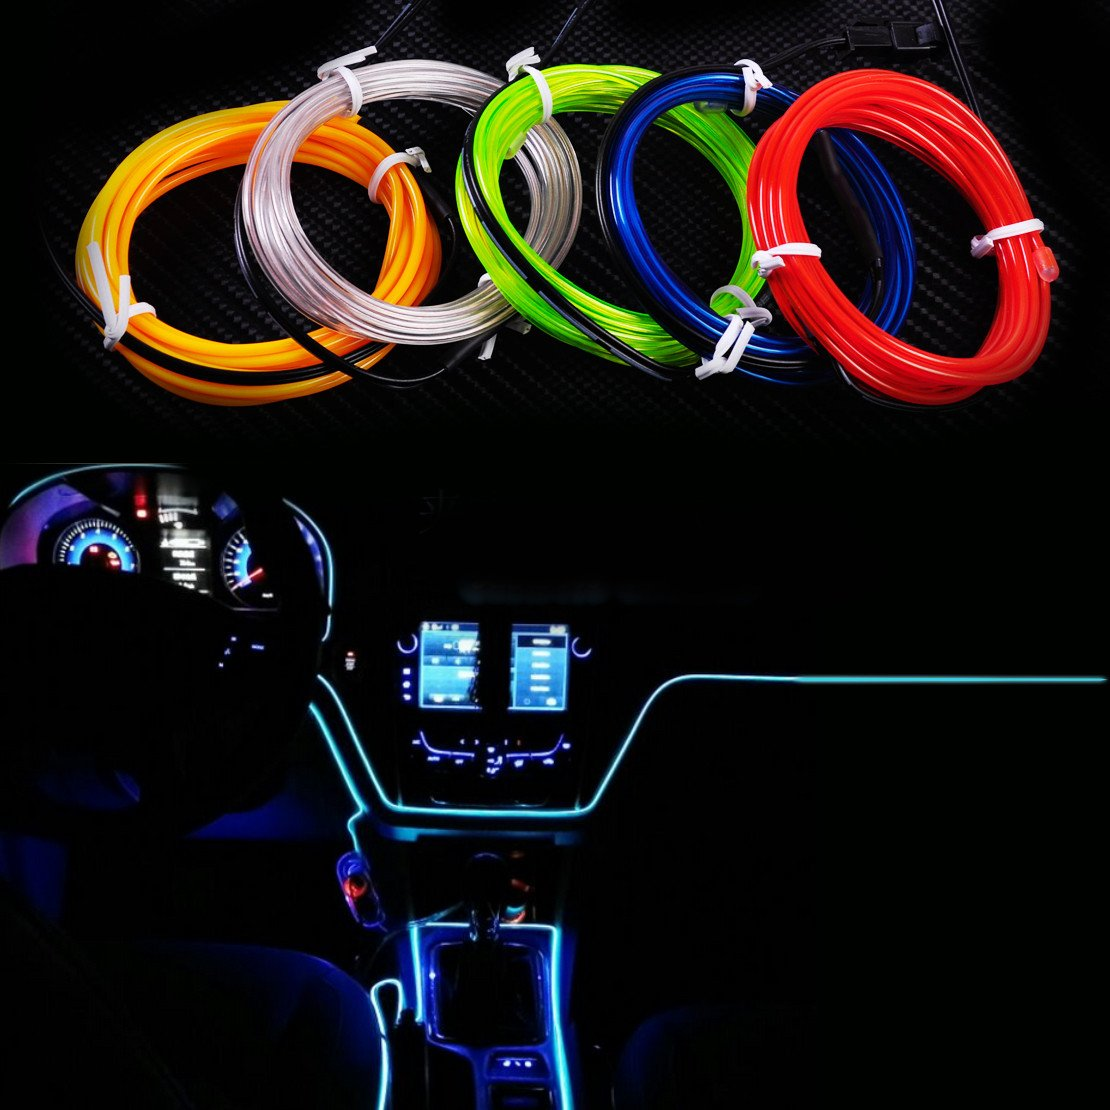 2M EL-Wire Flexible Led Neon Strip Cold Light Strip Rope Tape 12V Car Interior Decor Fluorescent for Ford Audi Nissan VW Kia